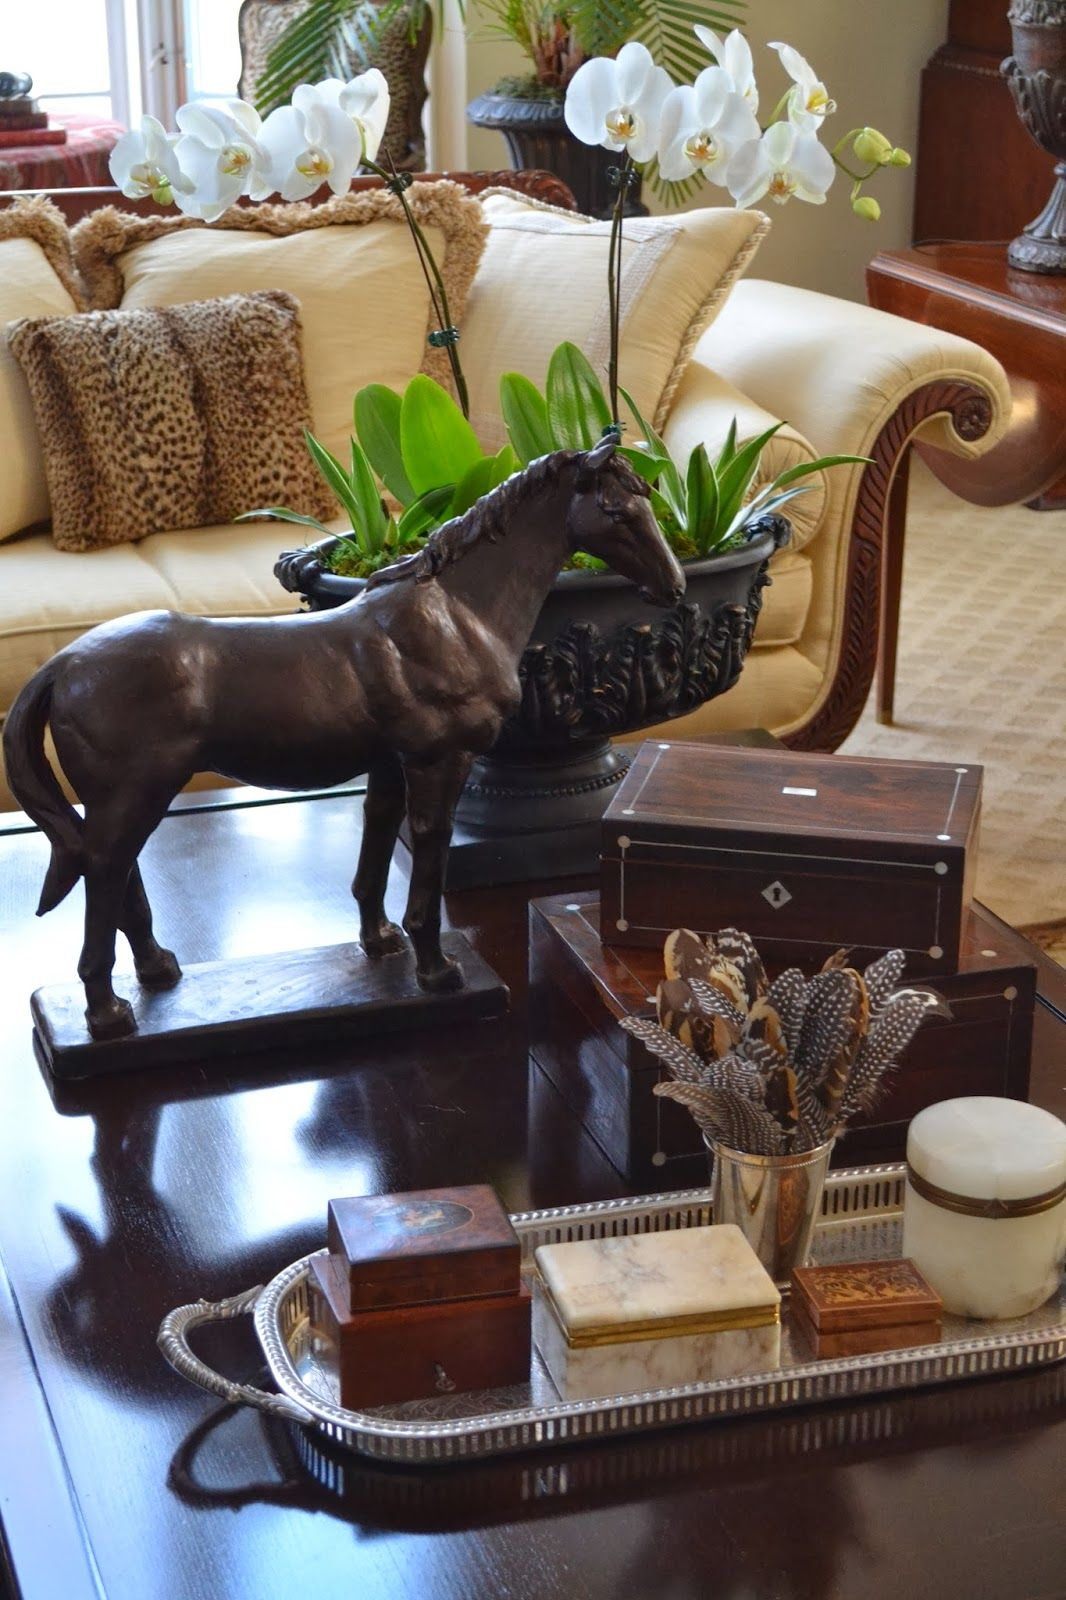 Swell Coffee Table Vignette From The Polohouse Display Ideas Pabps2019 Chair Design Images Pabps2019Com